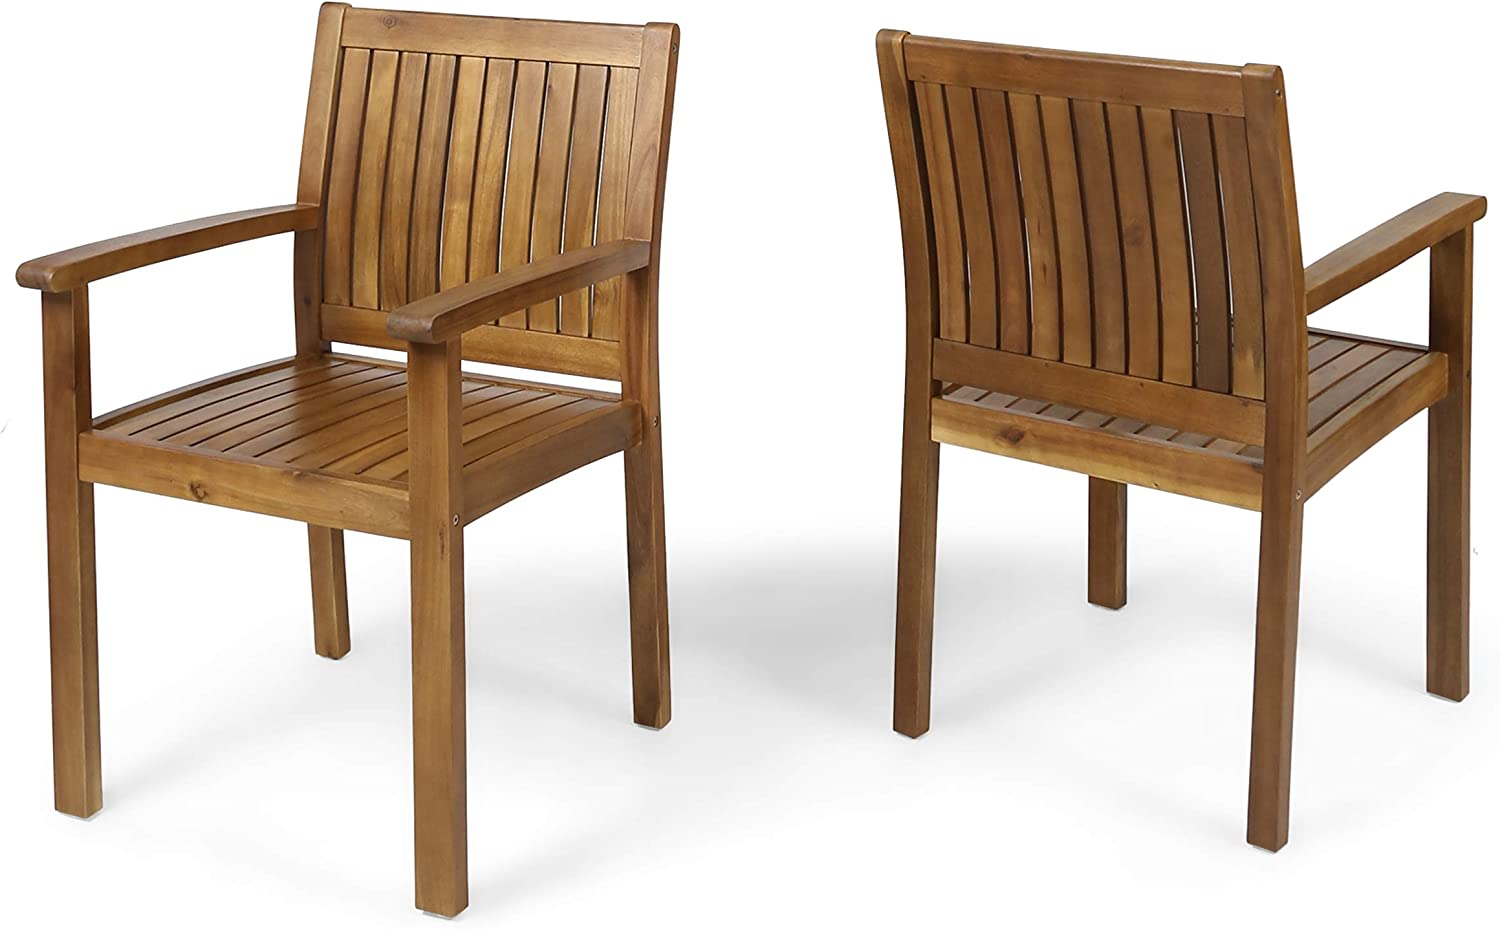 Christopher Knight Home 305350 Teague Outdoor Acacia Wood Dining Chairs (Set of 2), Teak Finish : Garden & Outdoor